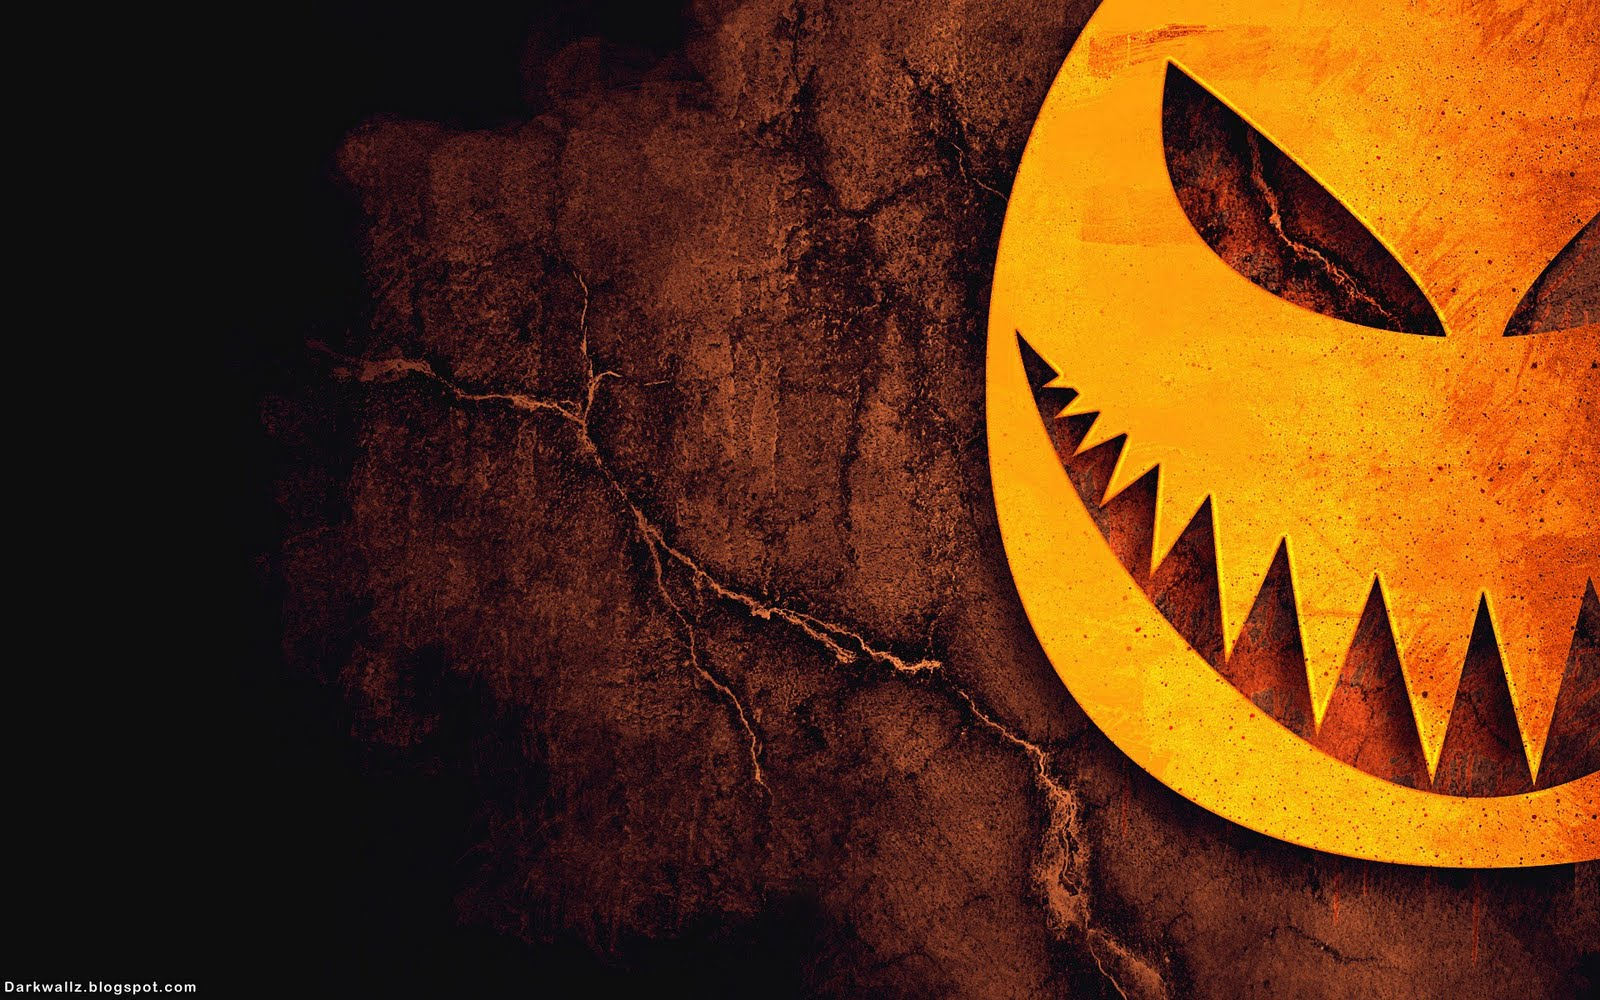 Halloween Wallpapers 89 | Dark Wallpaper Download